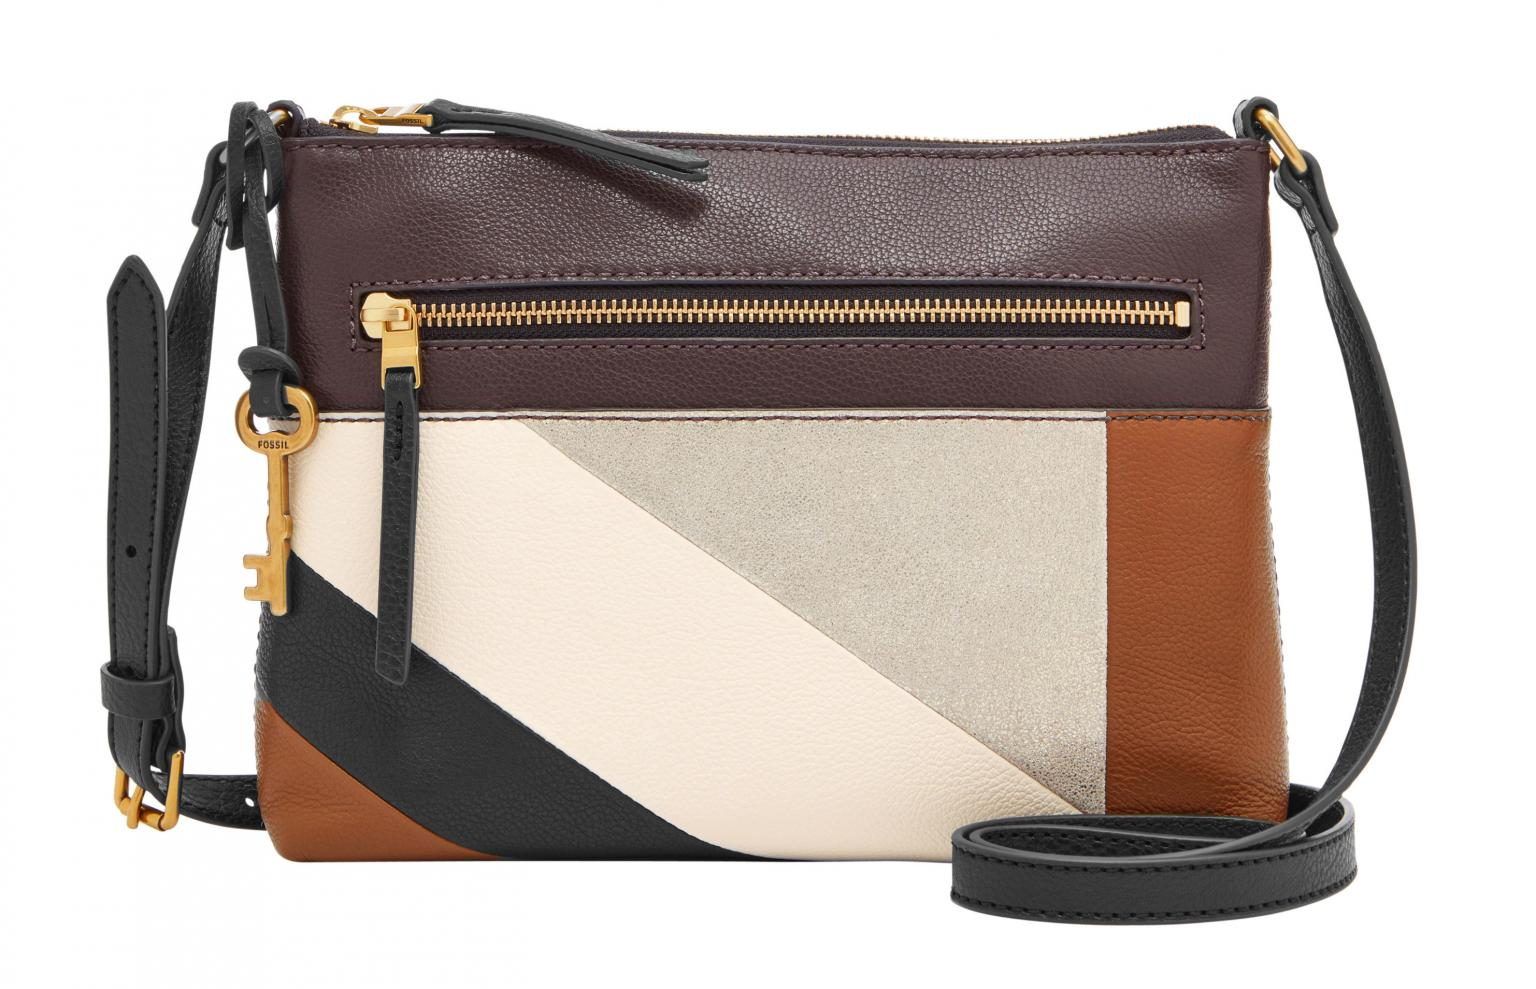 Fossil Seite 2 Bags More Keely Tote Canvas Crossovertasche Fiona Small Neutral Stripe Braun Gold